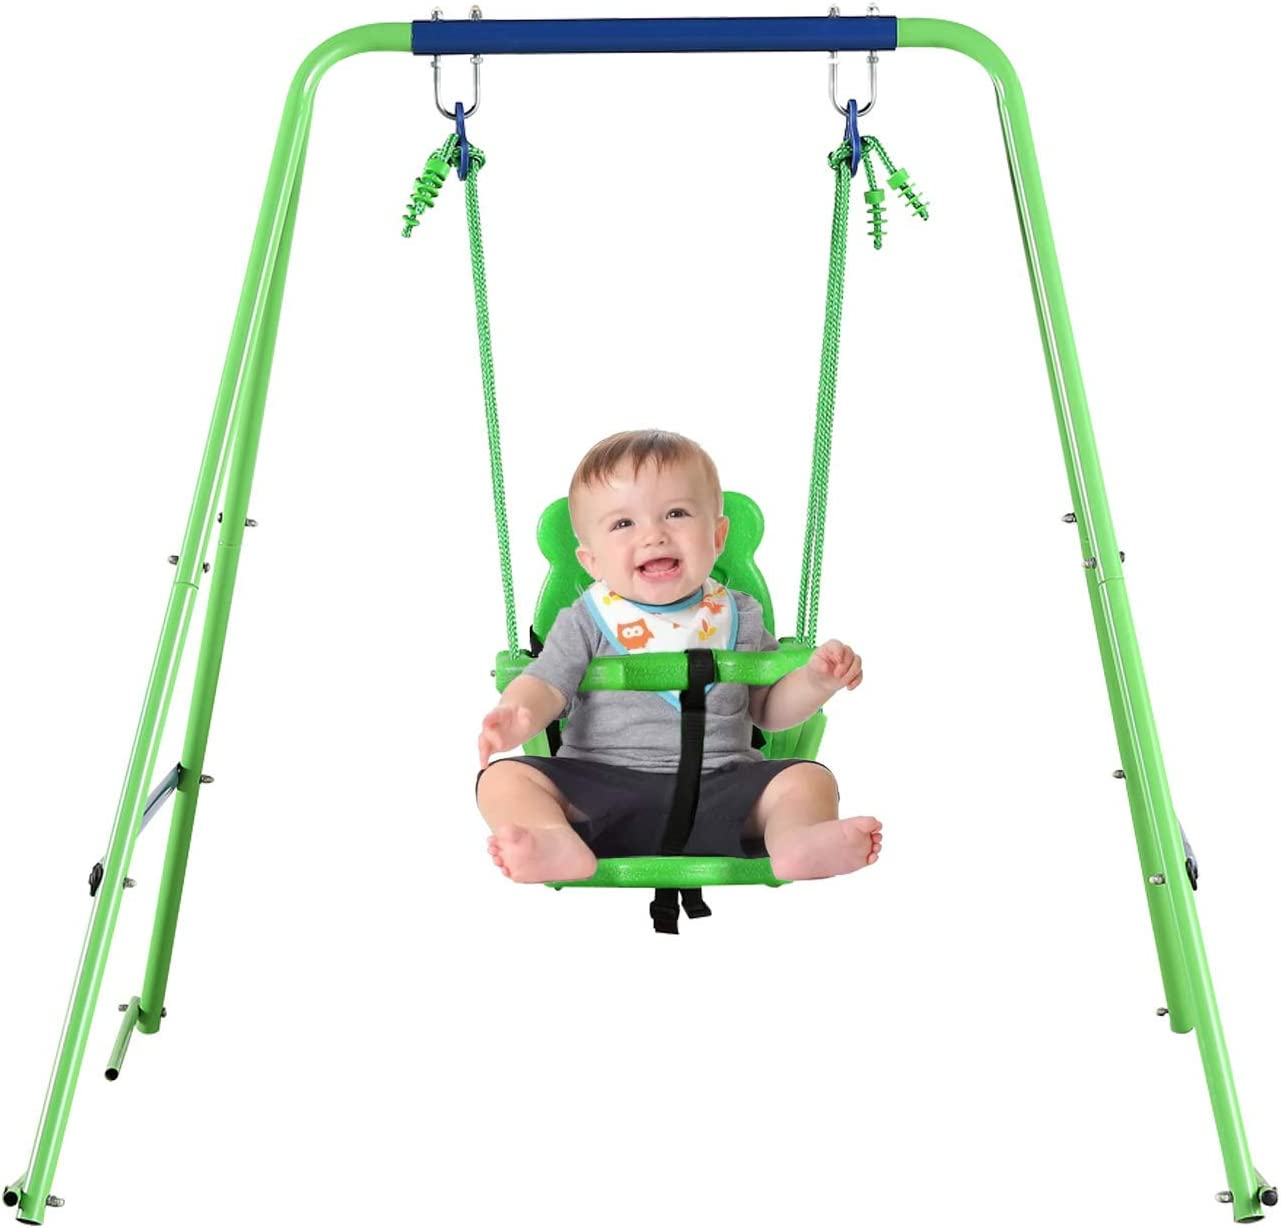 YACOOL Toddler Swing Set Challenge the lowest price of Japan Outdoor with Free Shipping Cheap Bargain Gift Belt Metal Seat